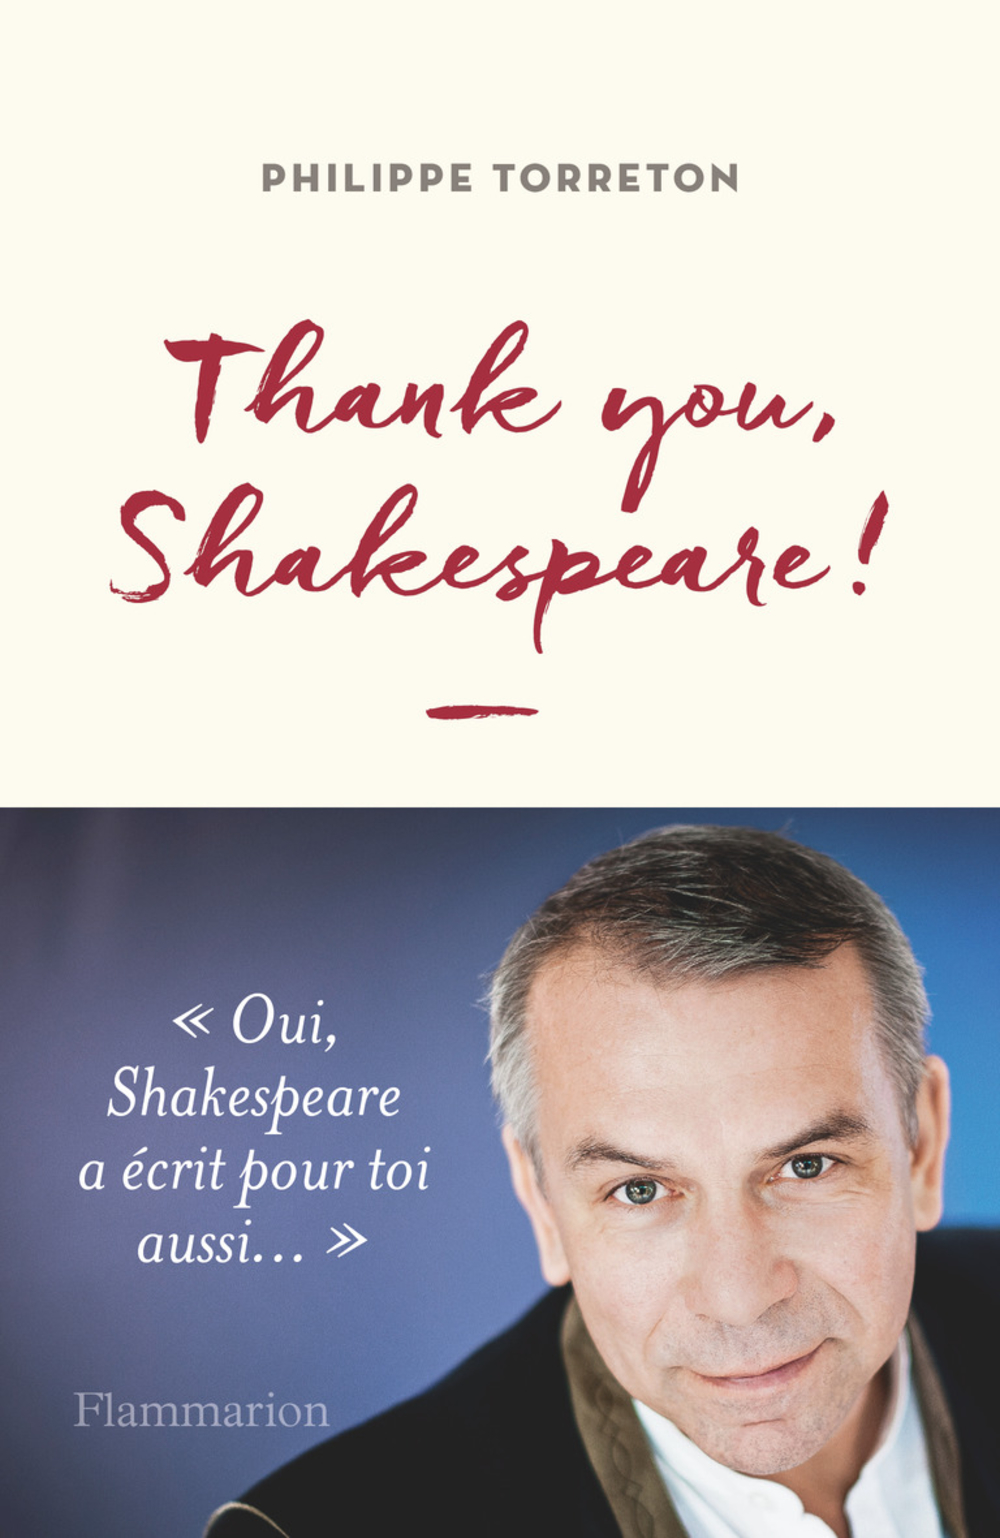 Thank you, Shakespeare !